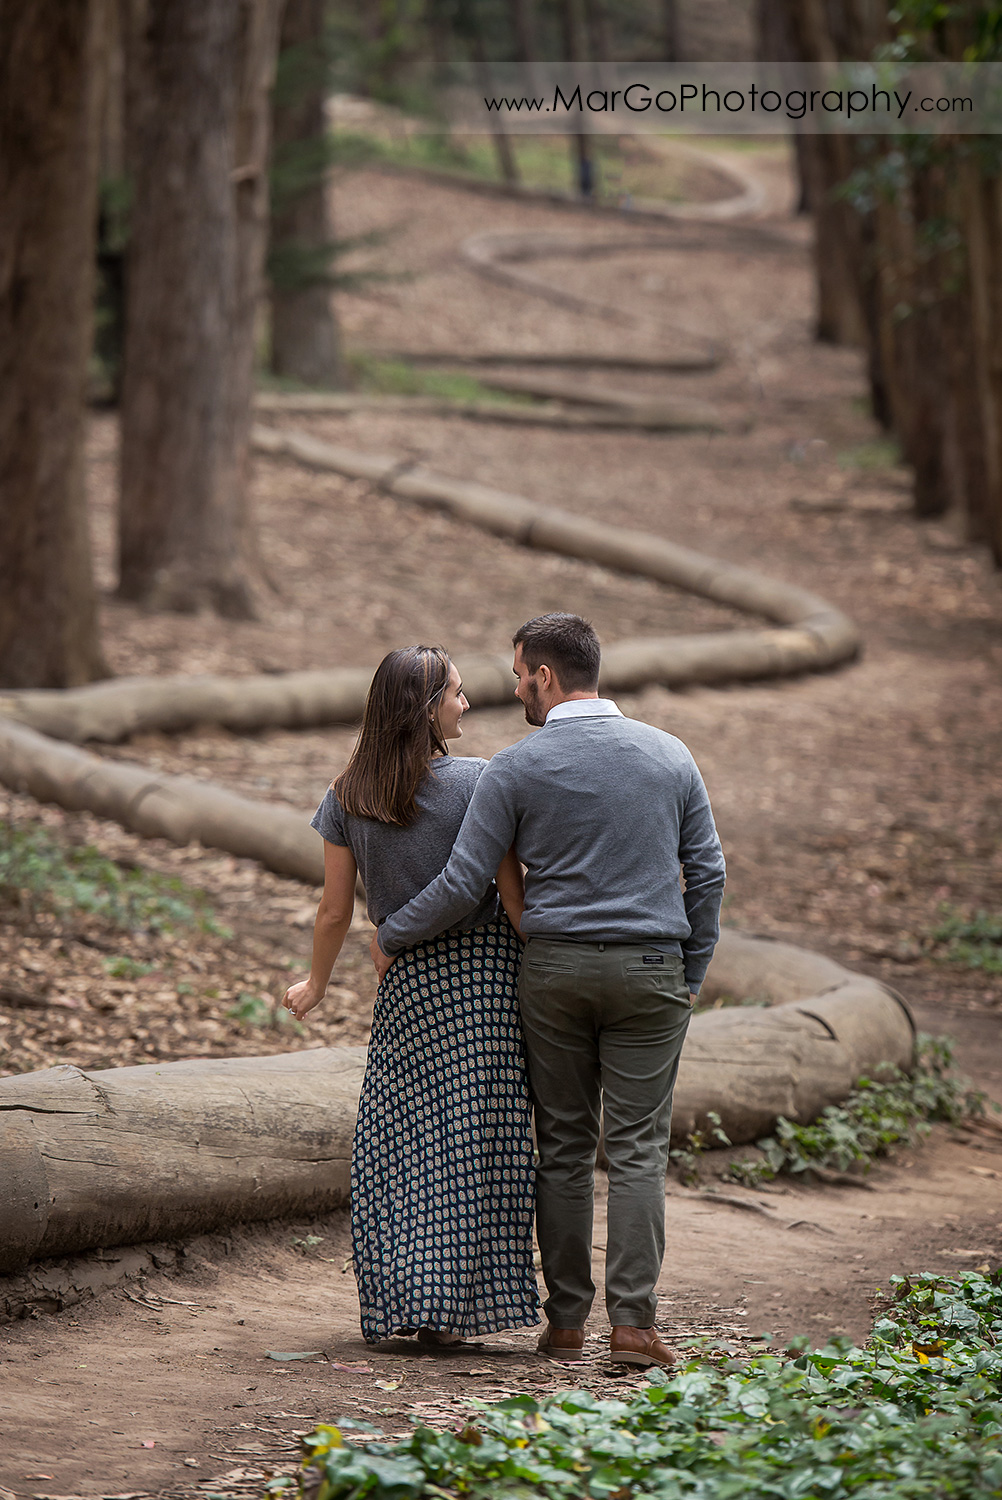 eengagement session at Lover's Lane at the Presidio in San Francisco - couple walking way in the park